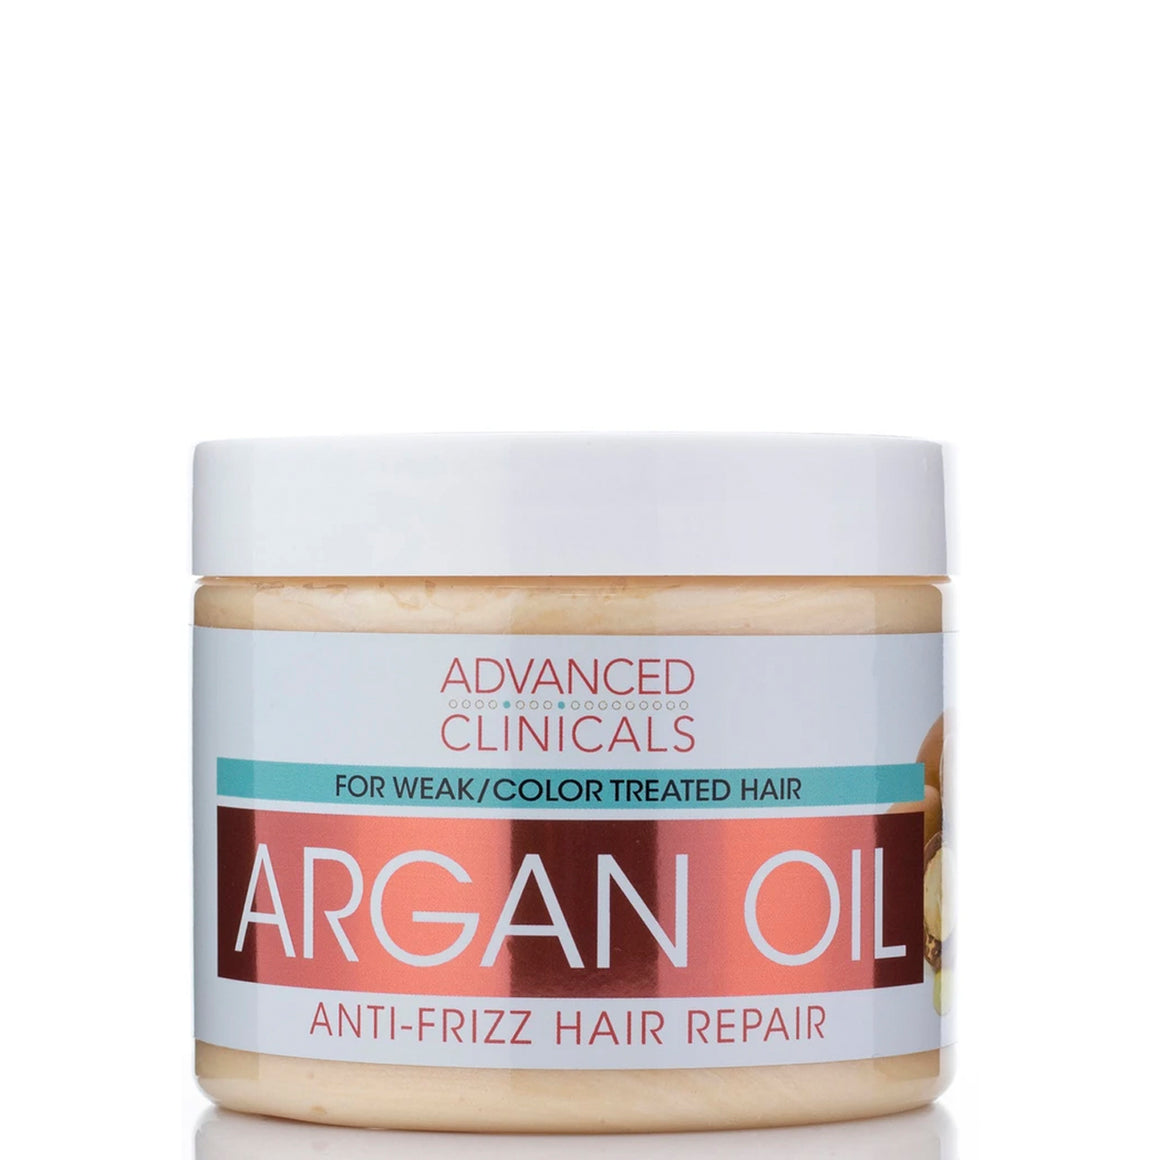 anti-frizz hair mask, argan oil, made in usa, paraben free, no animal testing